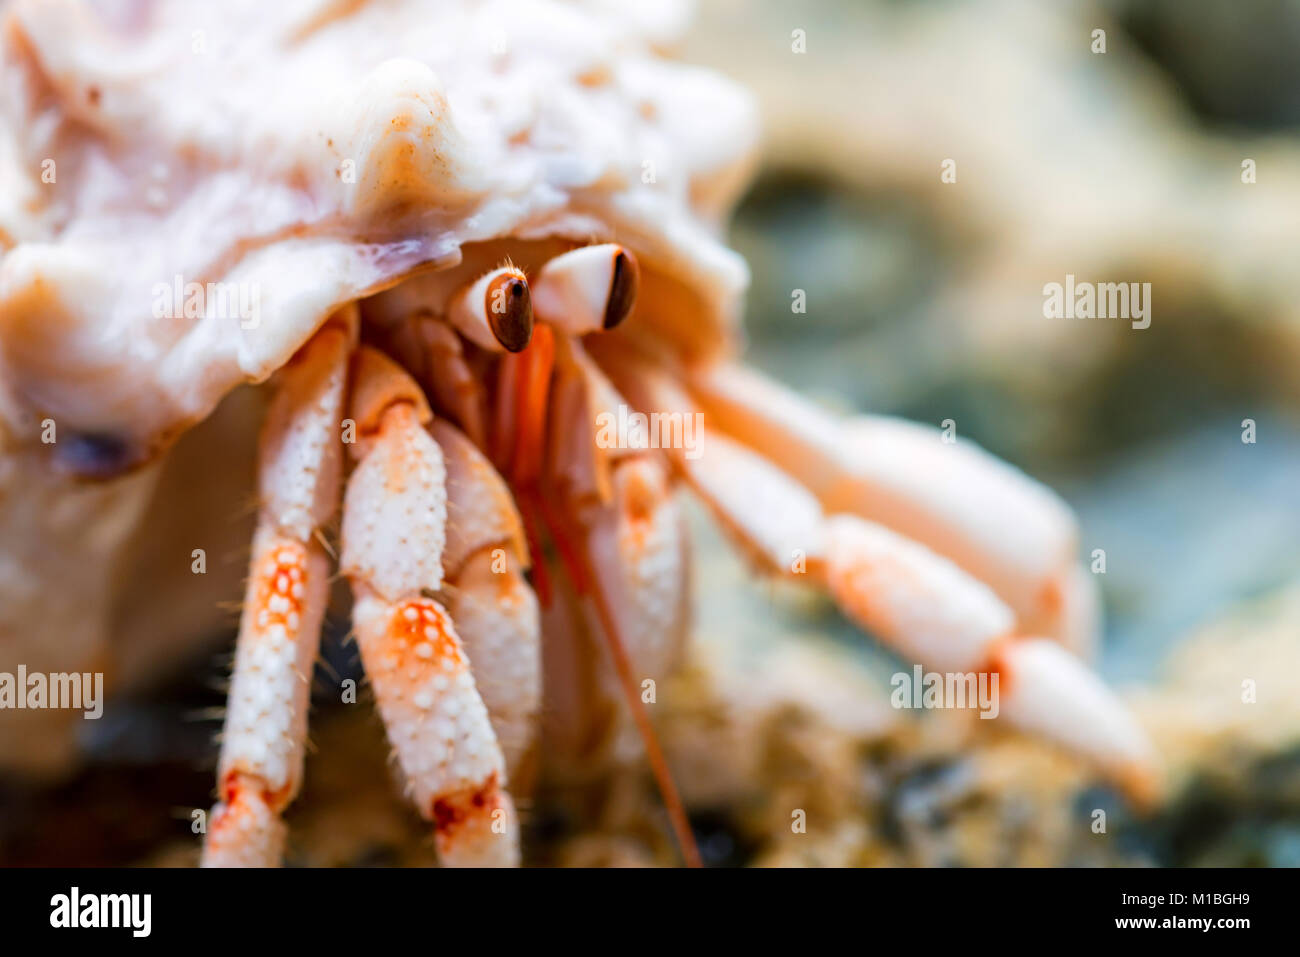 Hermit crab close-up - Stock Image